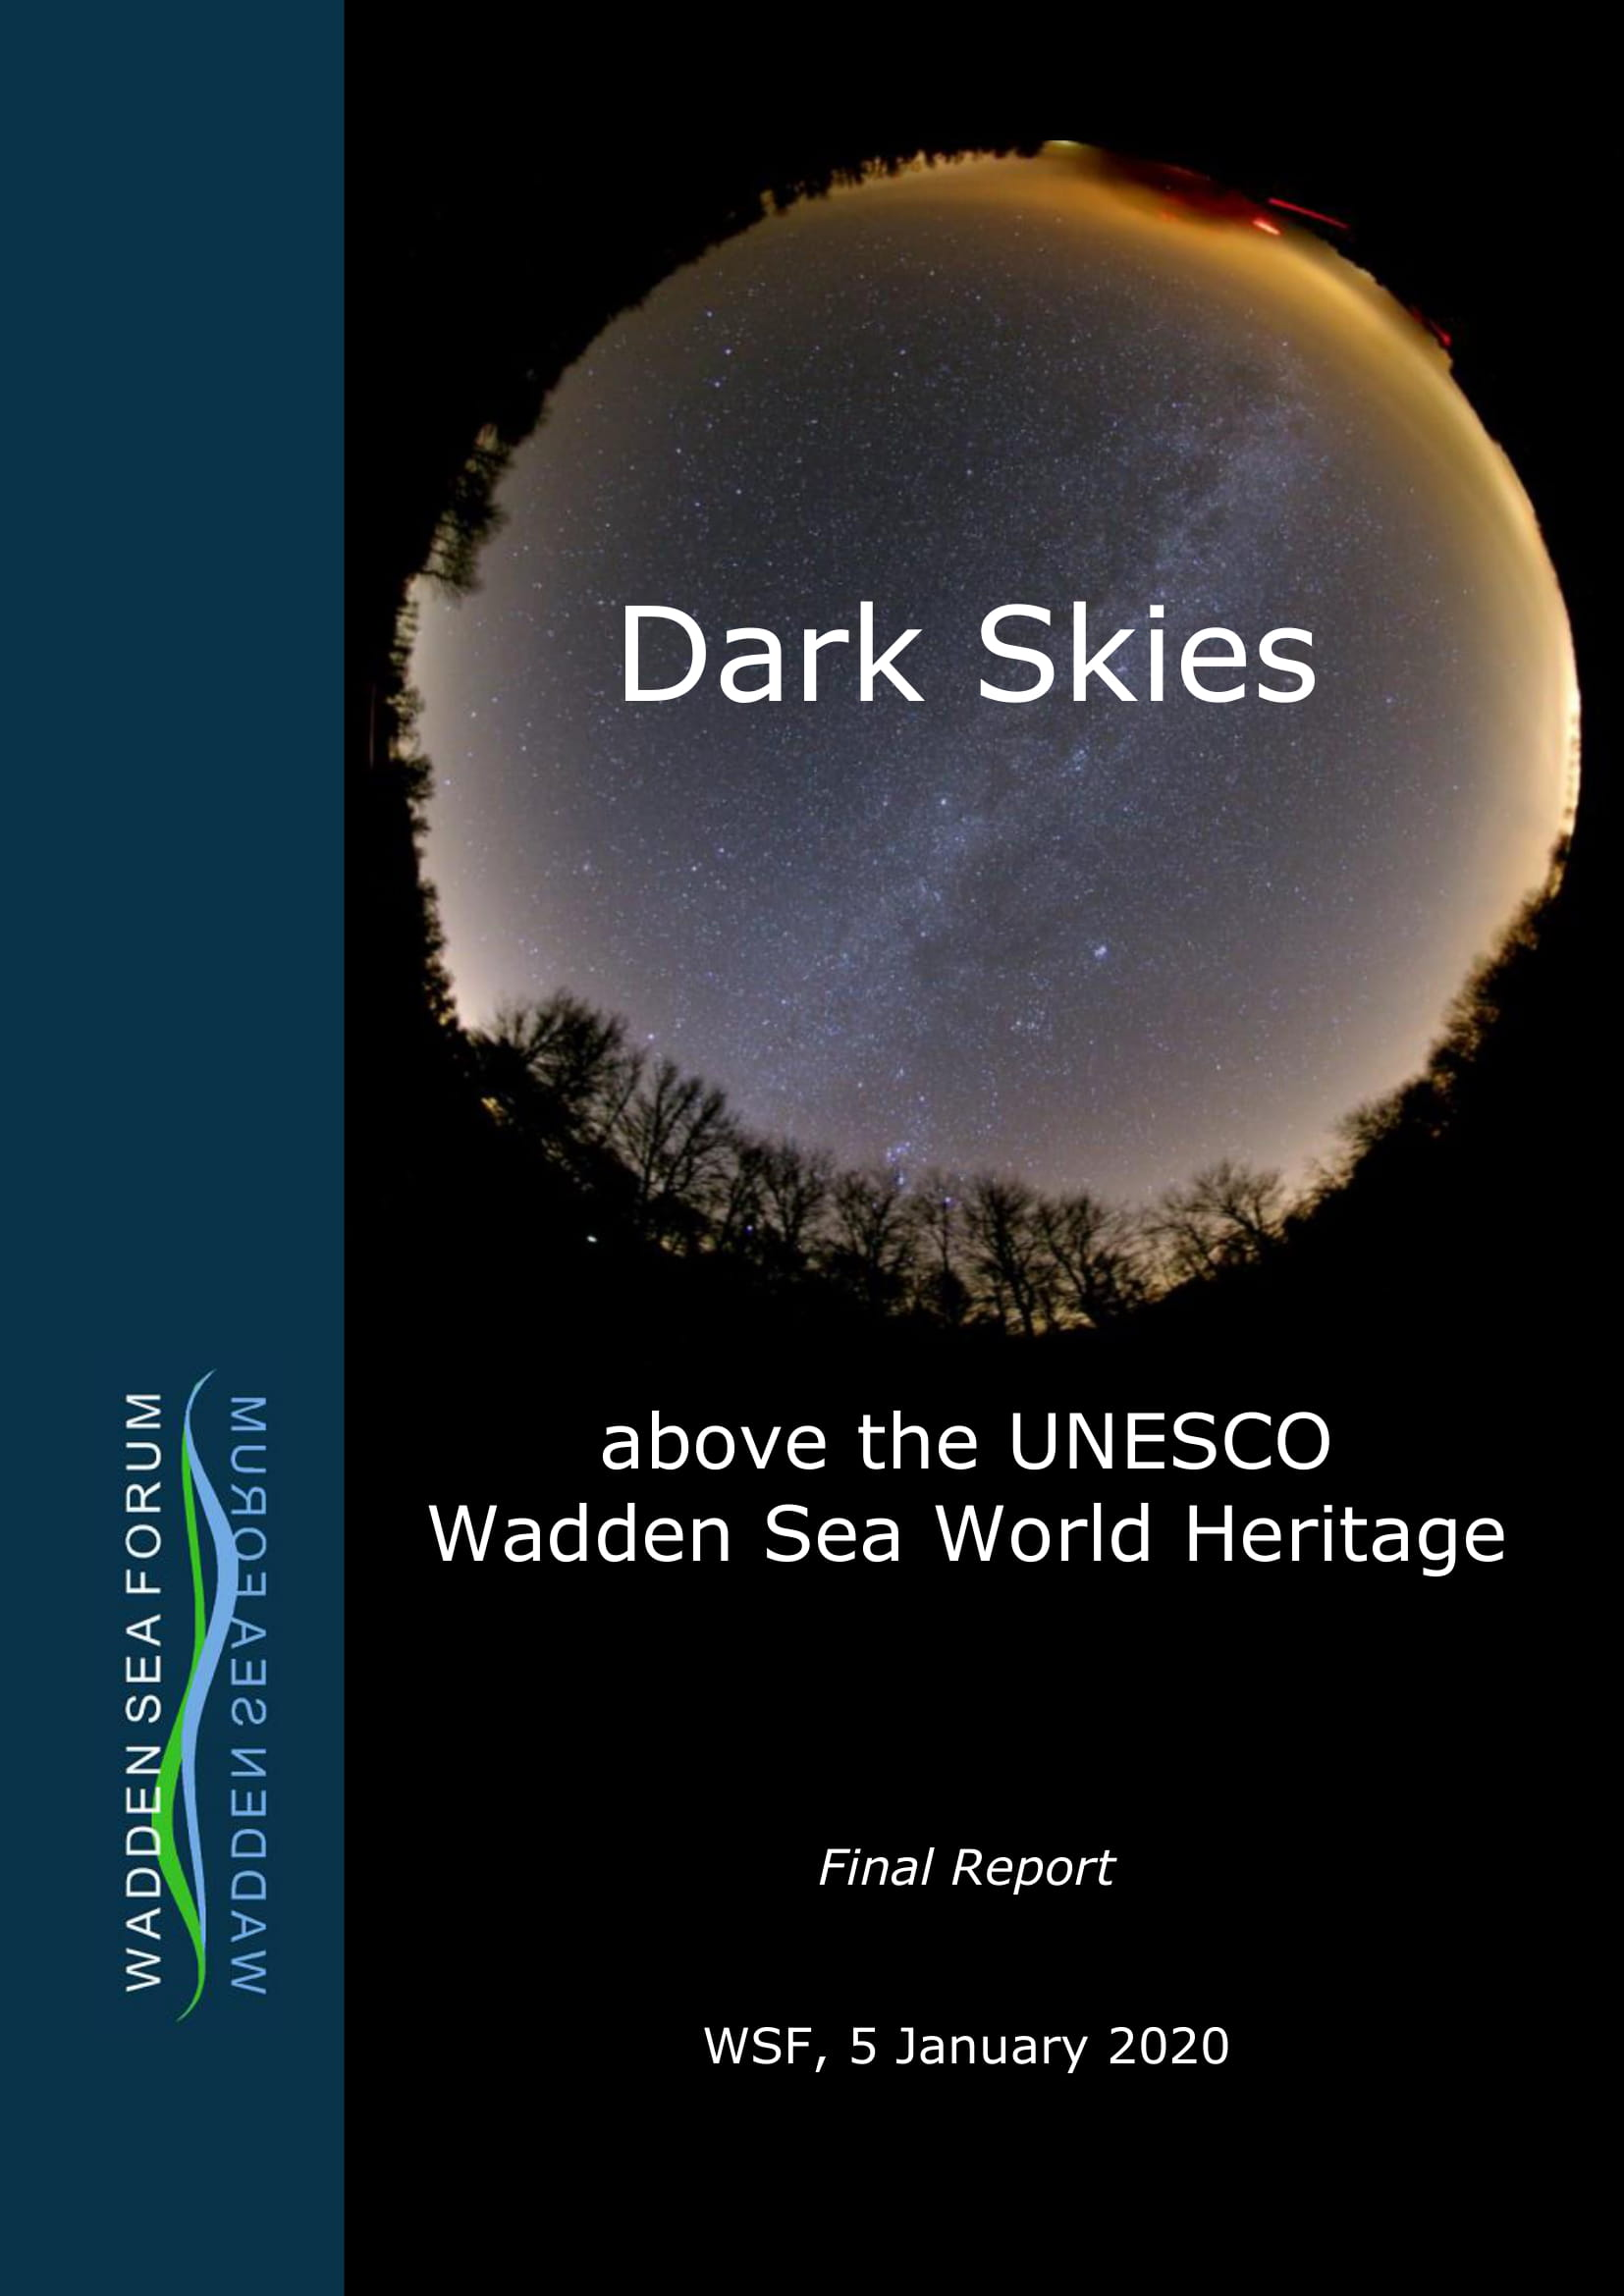 final report of the project dark skies above the UNESCO Wadden Sea World Heritage - WSF 2019